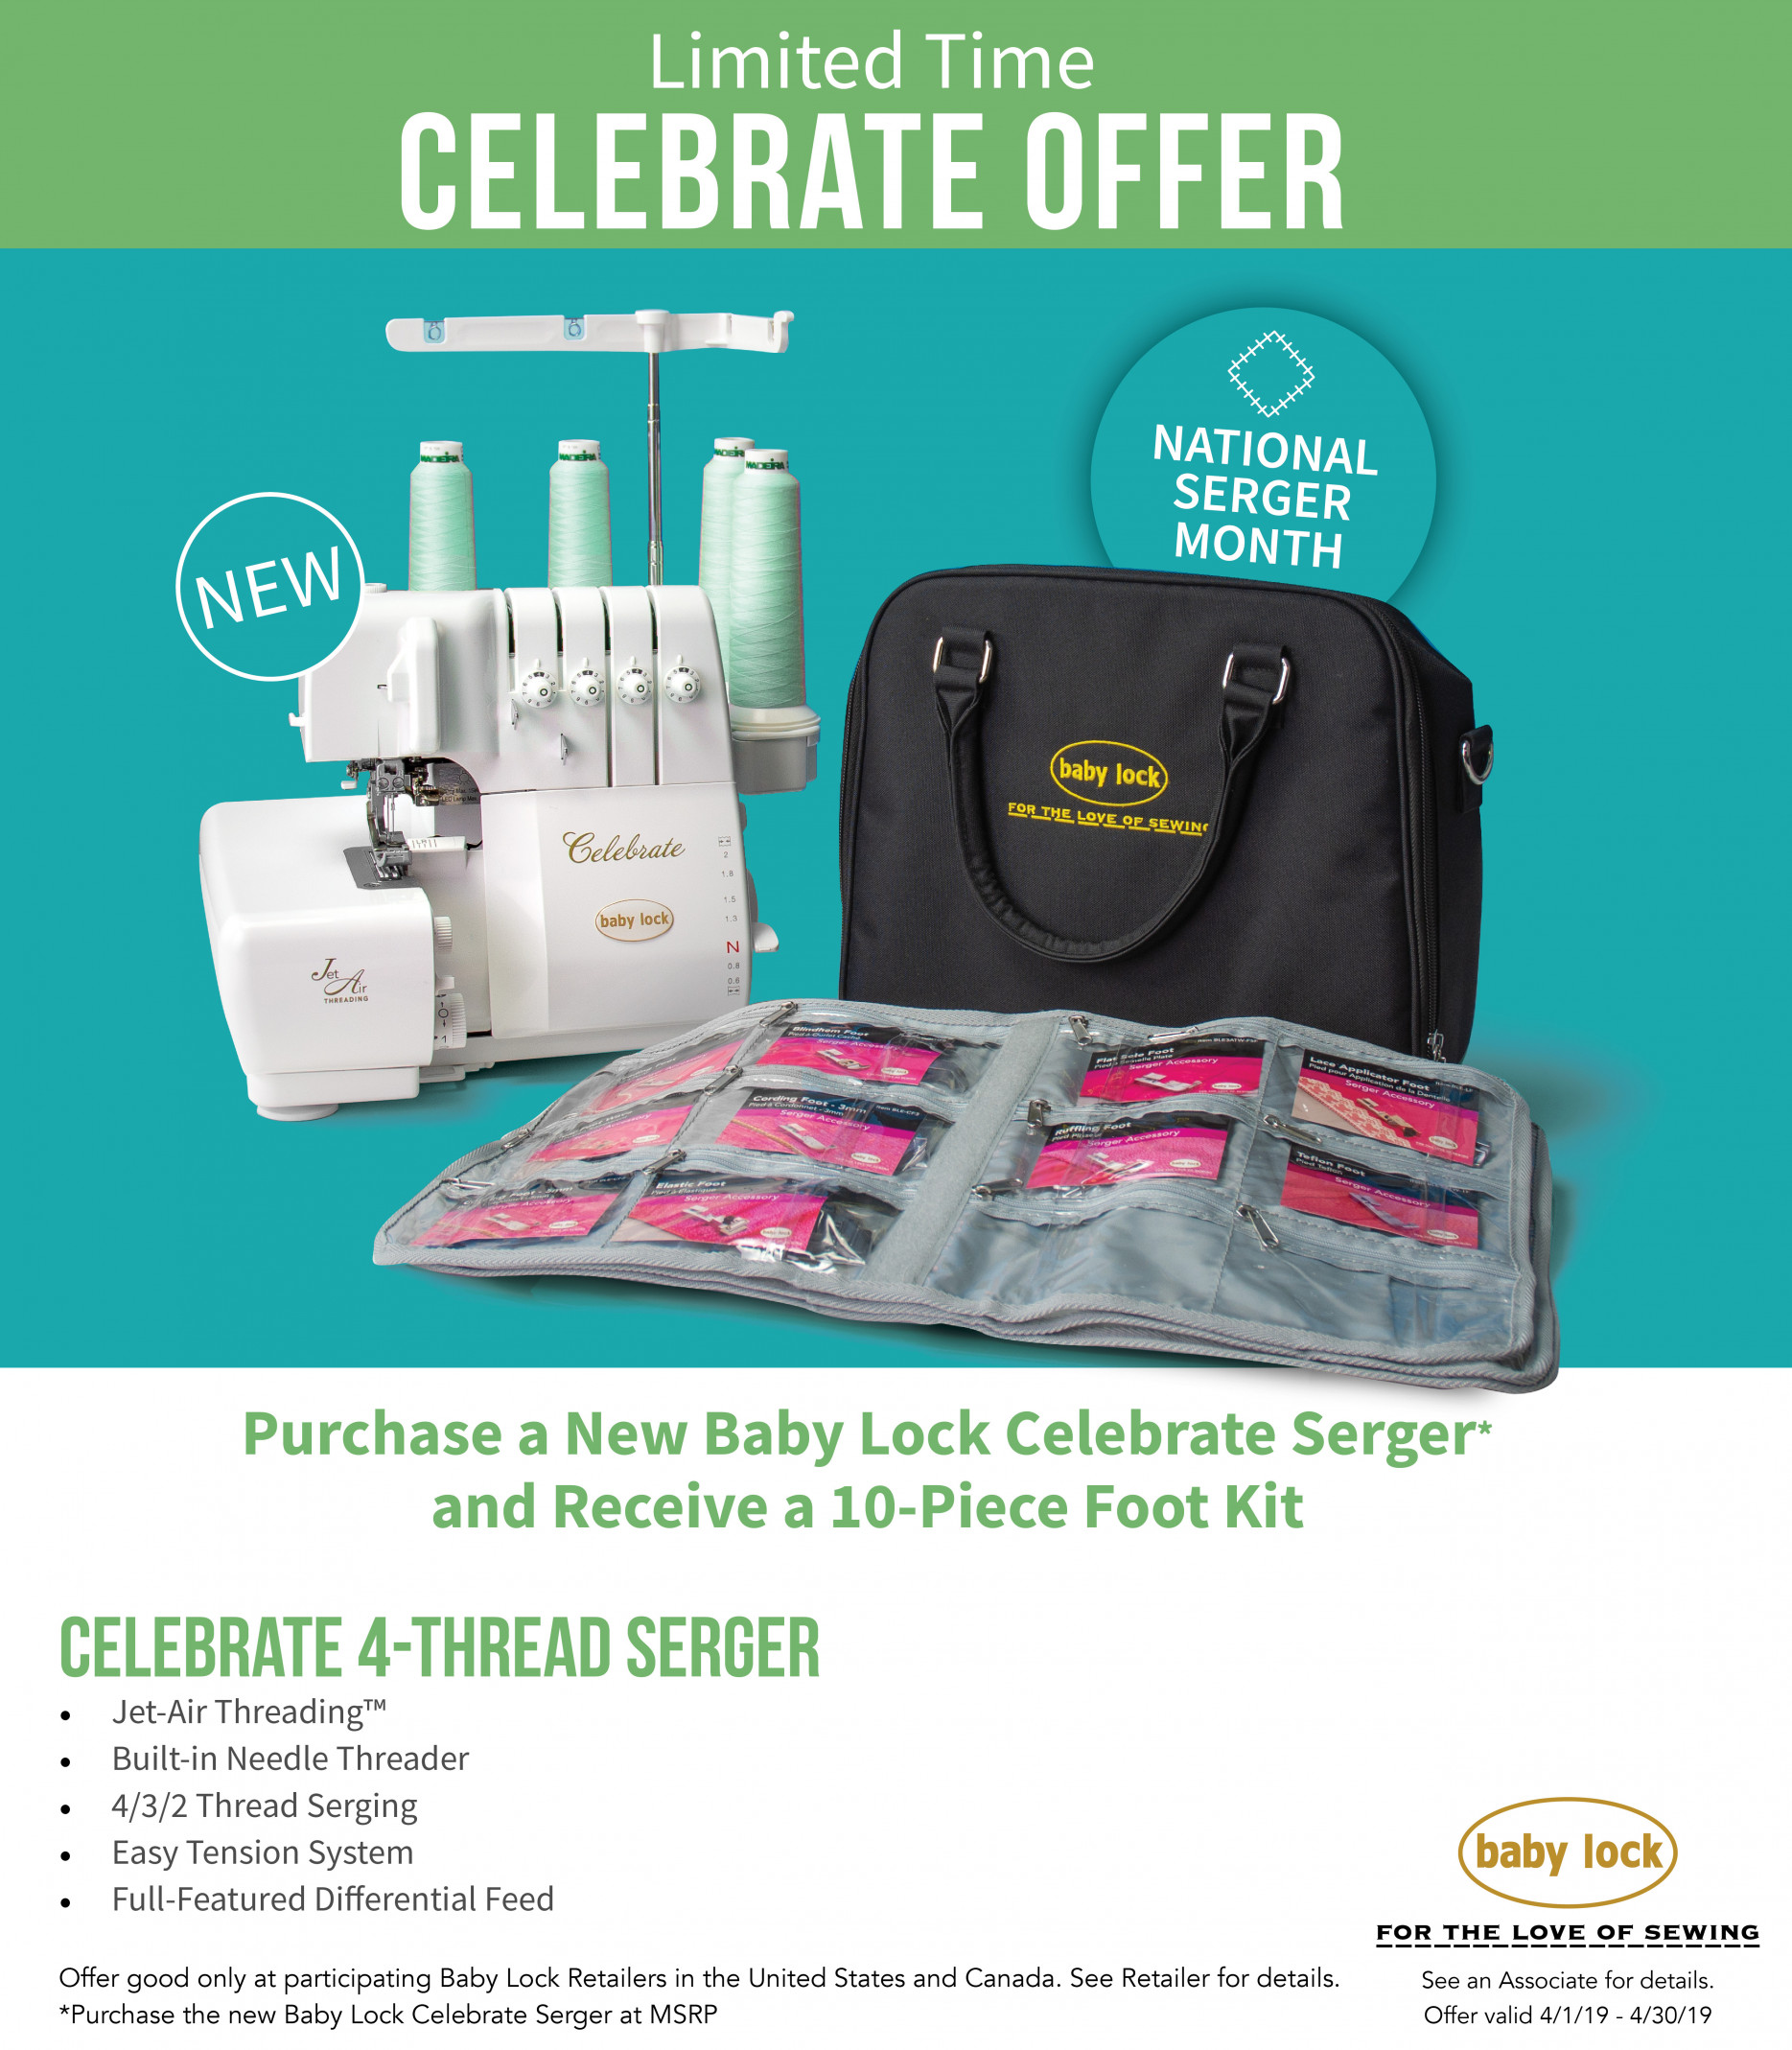 The NEW CELEBRATE serger features bright LED lighting and air threaded loopers. - Receive a 10 piece foot kit valued at $499 with the purchase of a Celebrate in April.